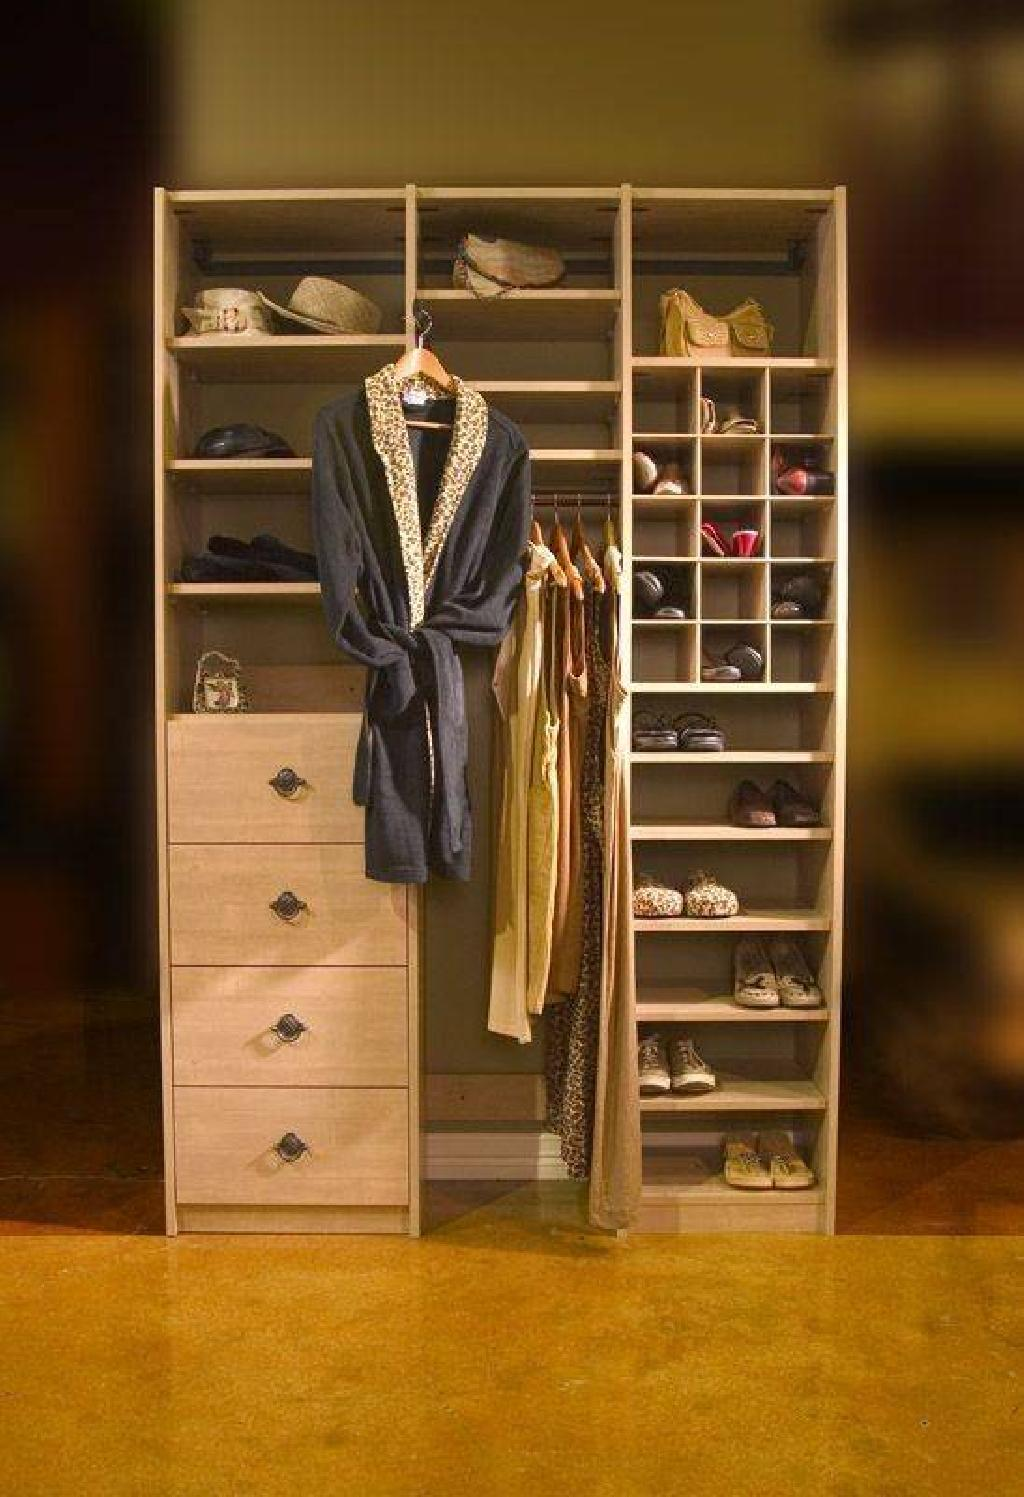 shelves pictures fresh drawers organizer mesmerizing wardrobe with closet magnificent hanging ideas